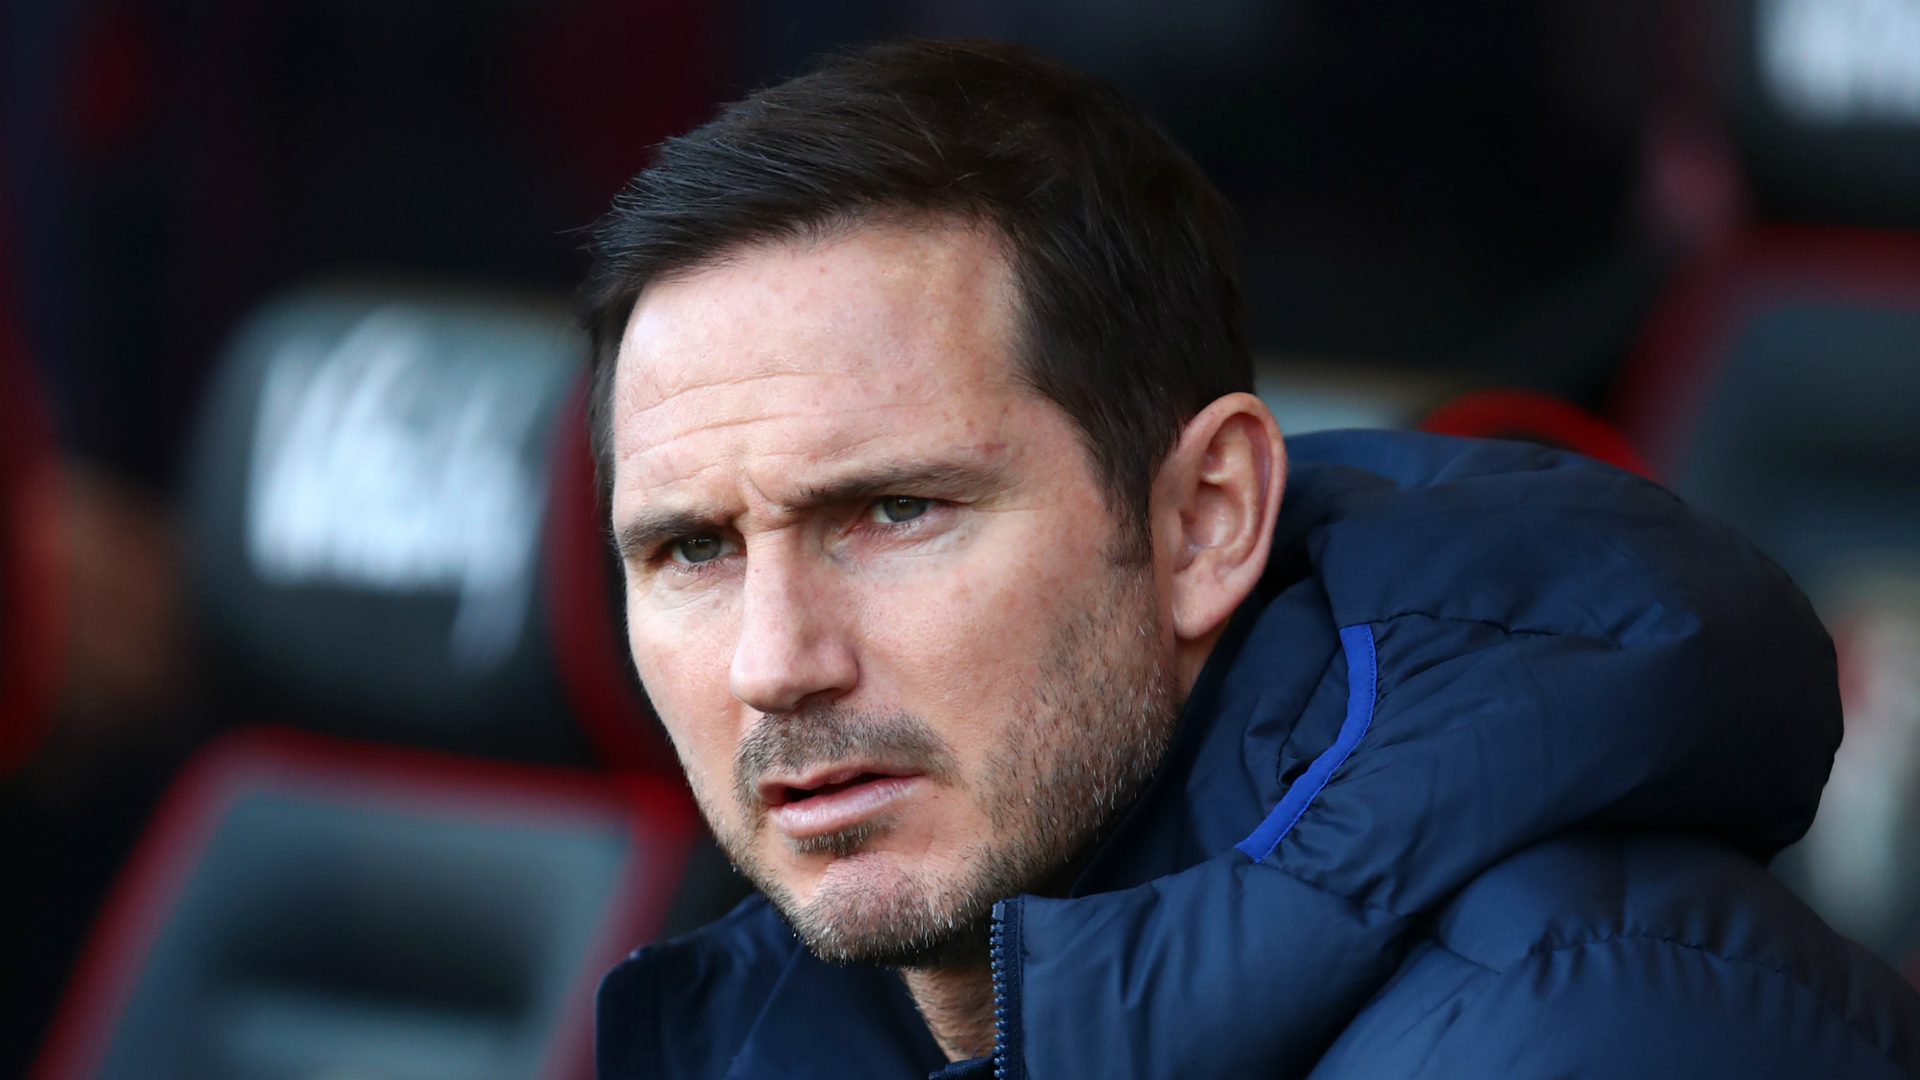 Coronavirus: Politicians painted wrong picture of football, says Lampard